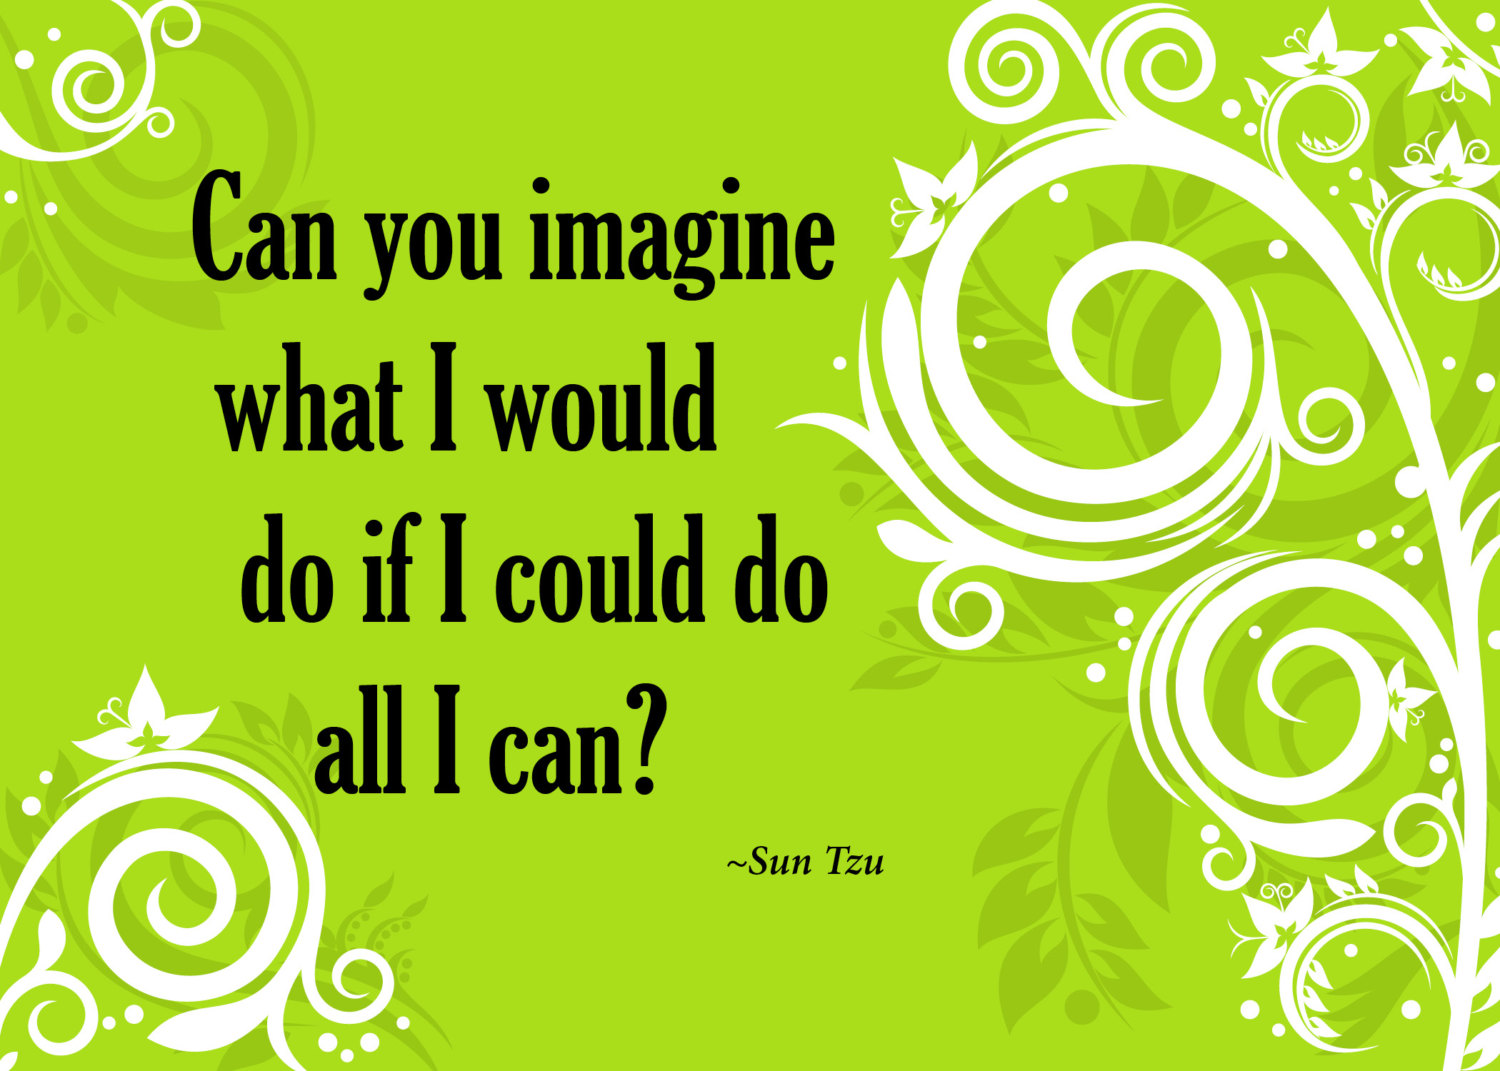 Can You Imagine What I Would Do If I Could Do All I Can!